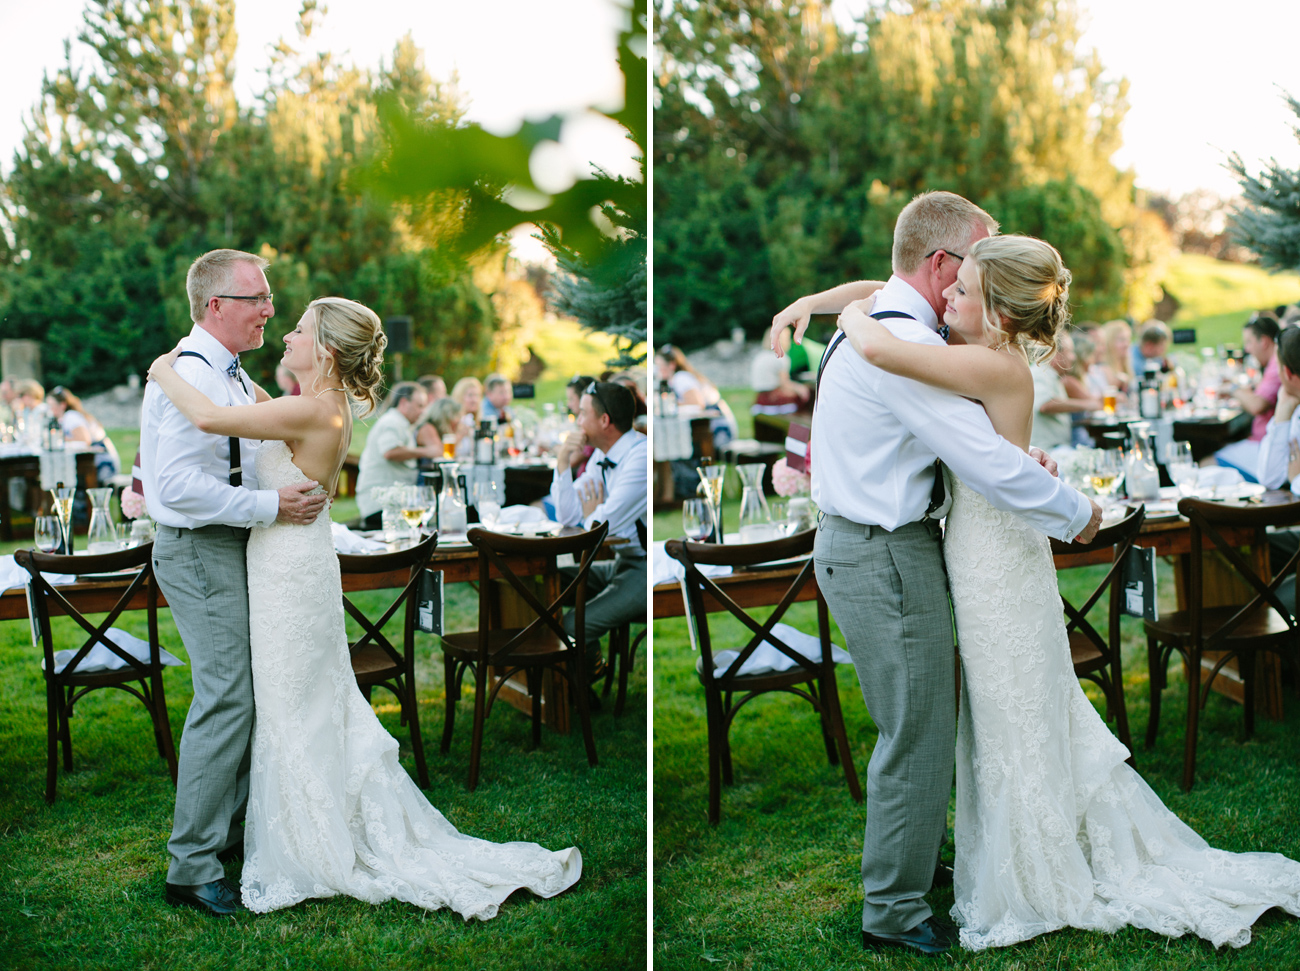 Basel_Cellars_Wedding_Photography_AMYIAN_89.JPG